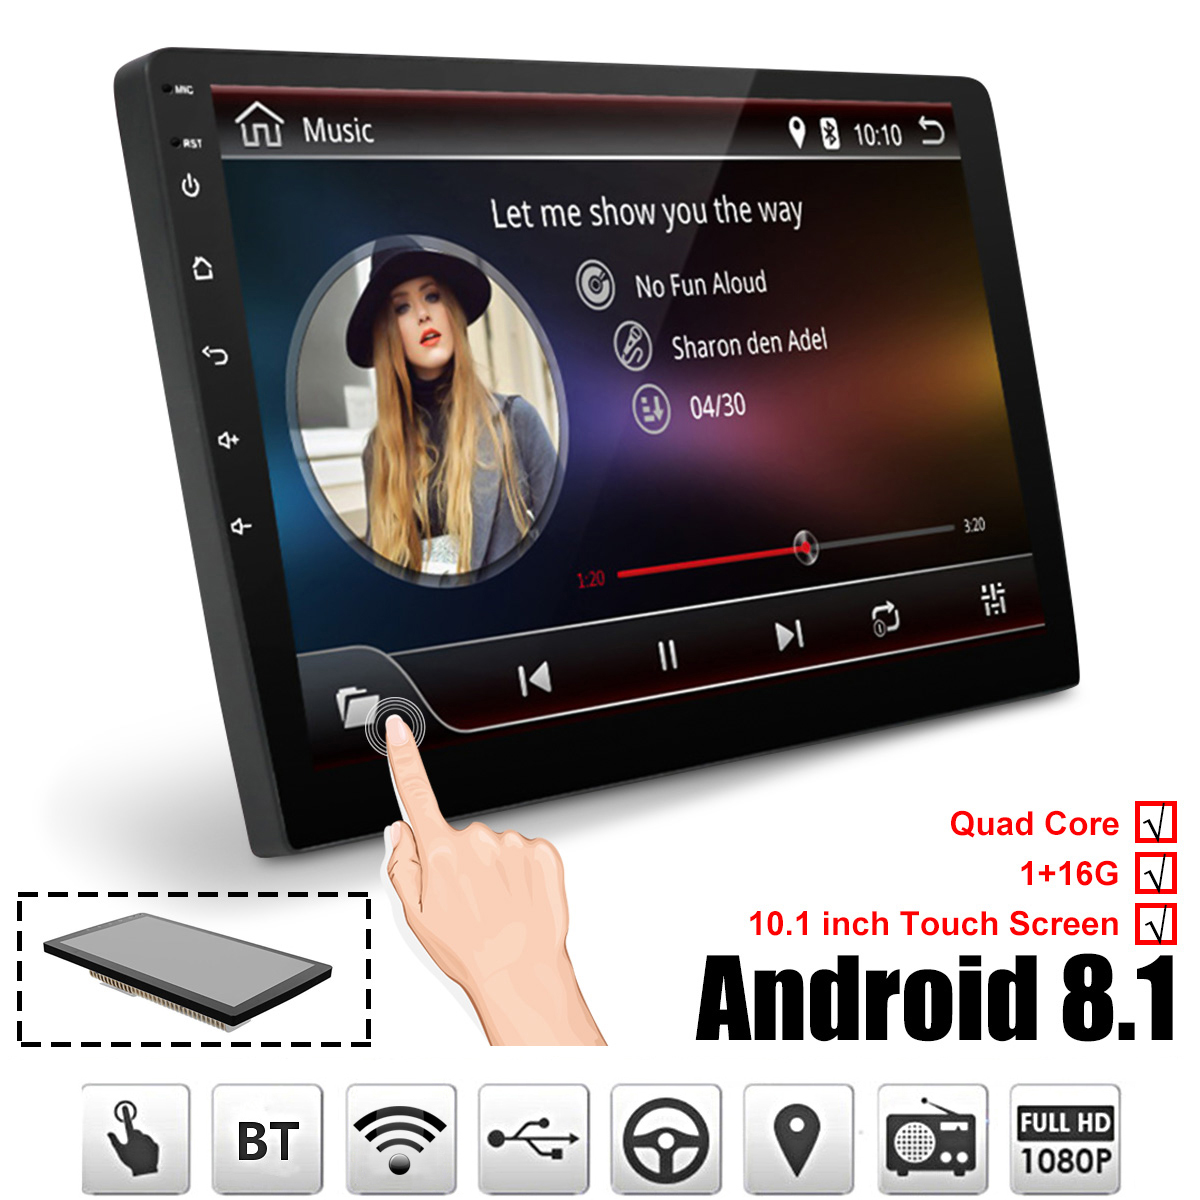 Car Multimedia Player 10.1 Android 8.1 1+16G Car Stereo 2DIN bluetooth WIFI GPS Nav Quad Core Radio Video Car MP5 PlayerCar Multimedia Player 10.1 Android 8.1 1+16G Car Stereo 2DIN bluetooth WIFI GPS Nav Quad Core Radio Video Car MP5 Player